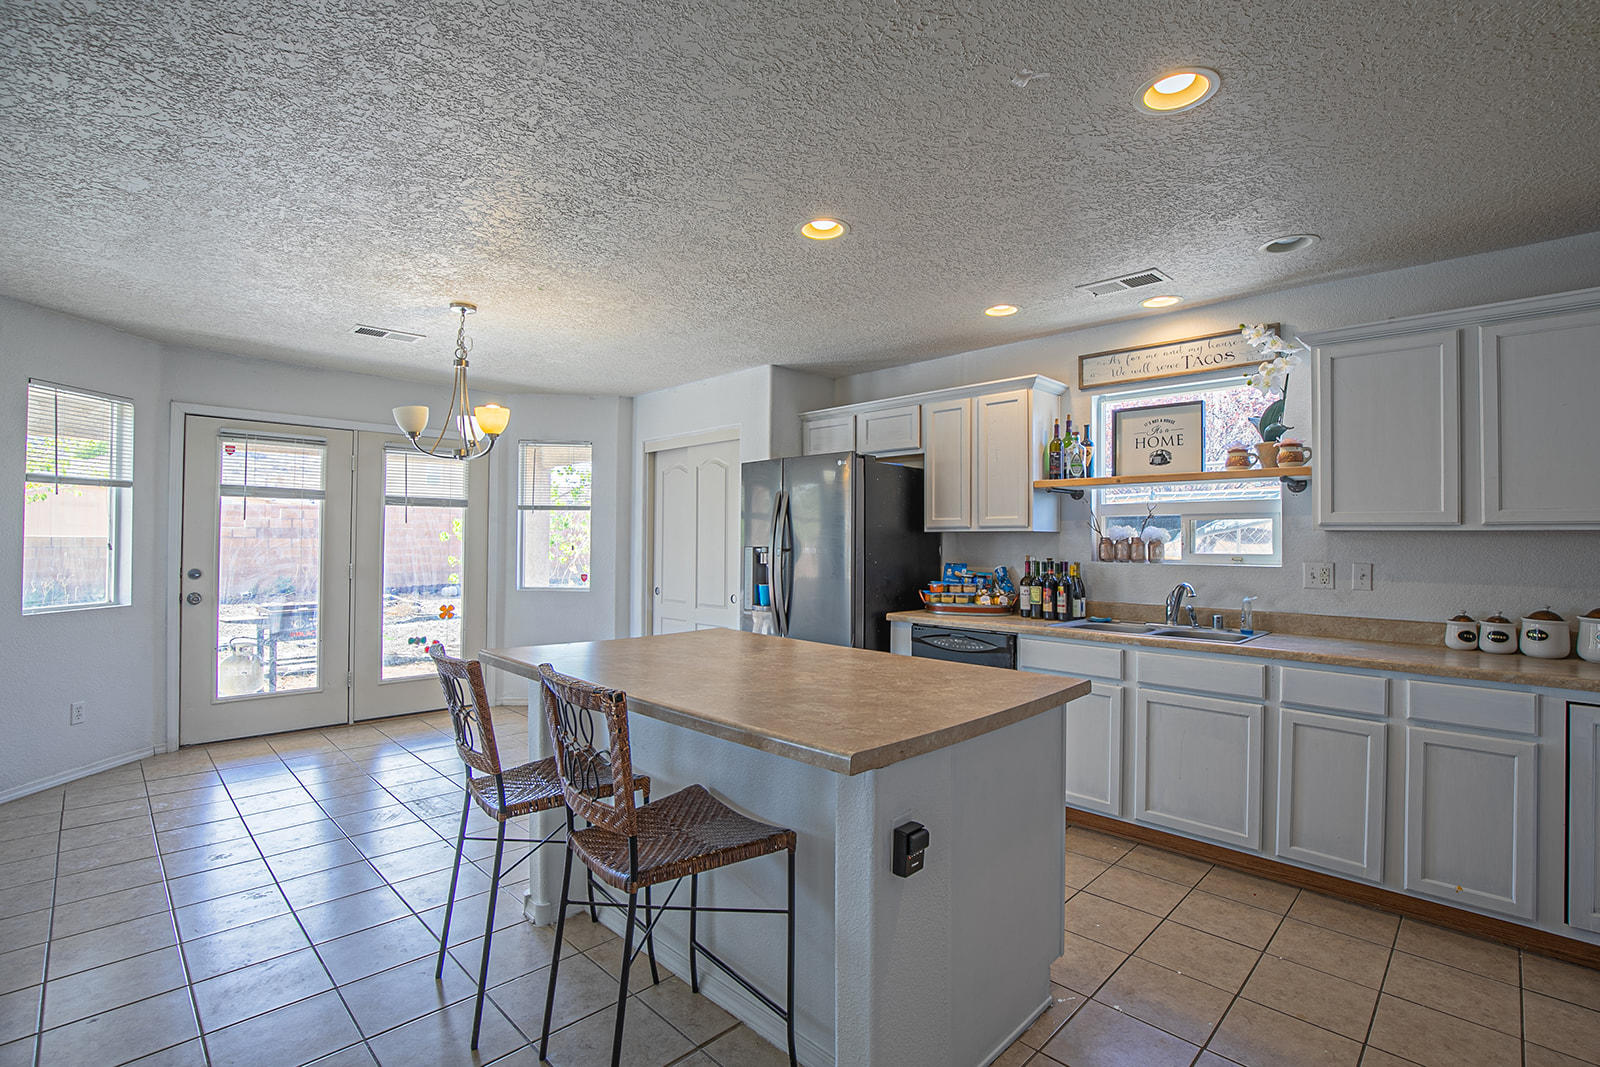 Take a look at this beautiful 3 bedroom 3 bath home! Complete with over 2,100 square feet, open floor plan with 2 living areas. This home has just been completed with new flooring throughout! Schedule your showing today this property won't last long!!